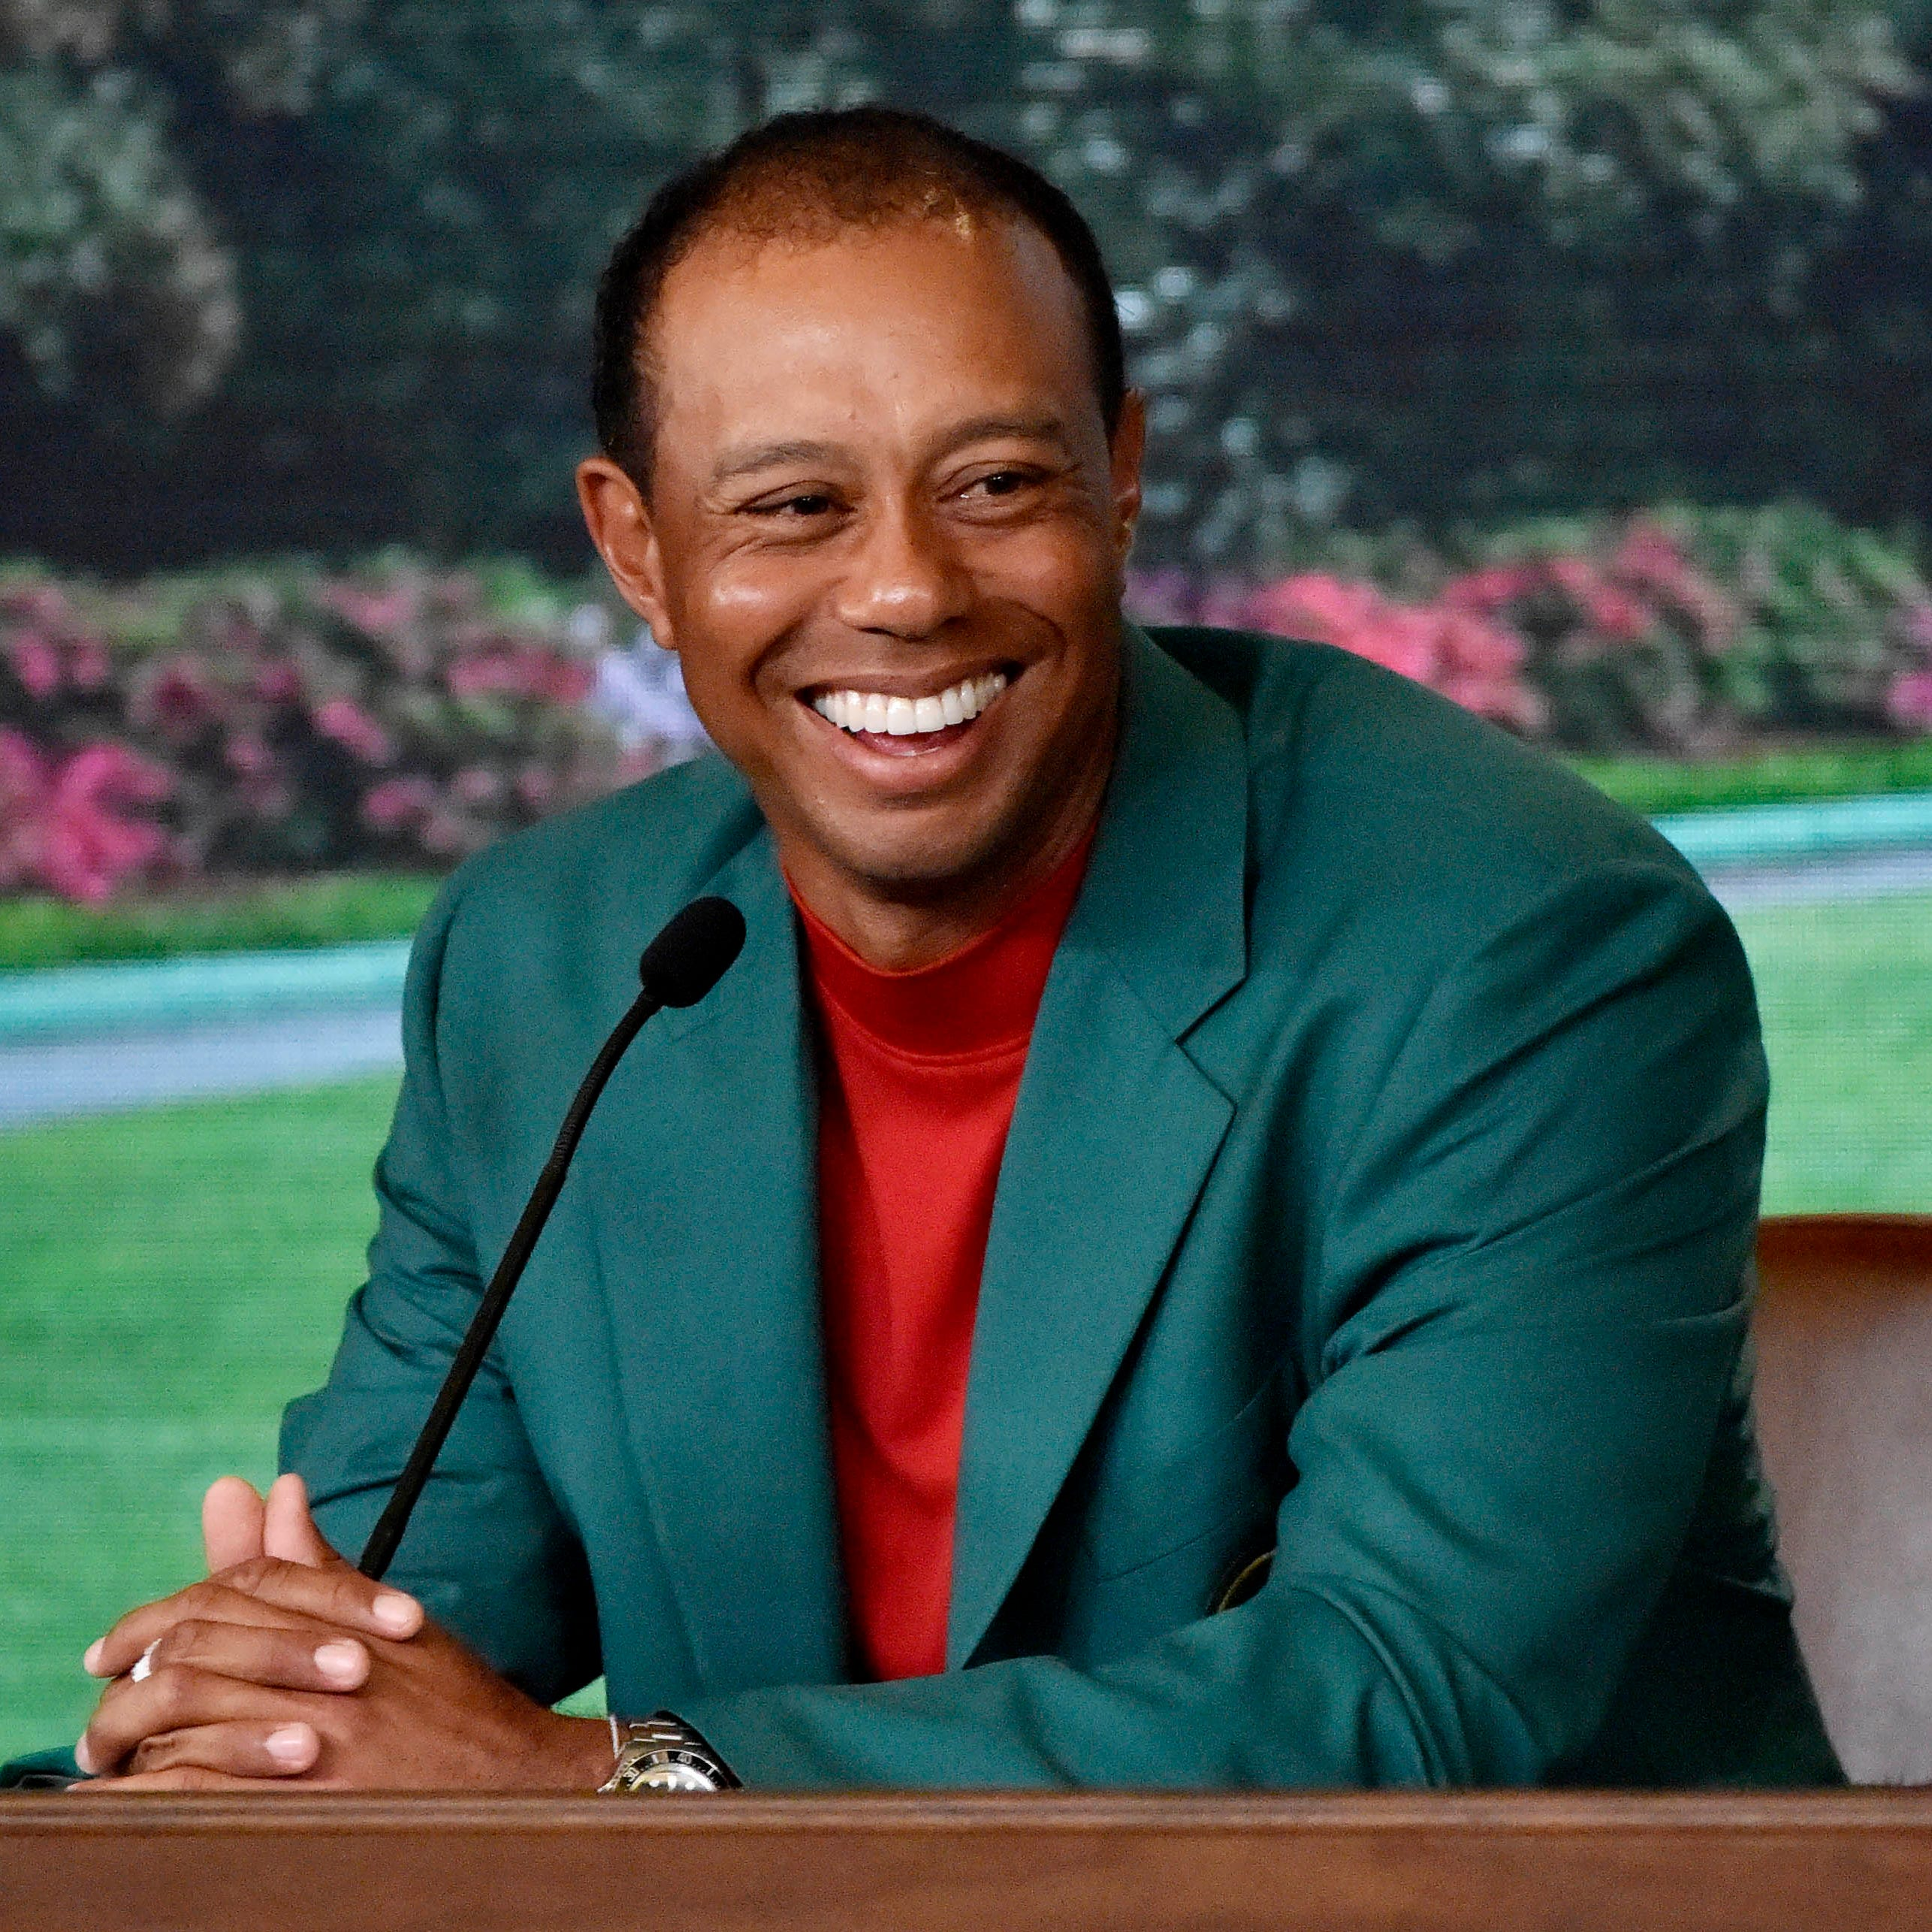 Tiger Woods shows up to his Florida restaurant rocking Masters green jacket